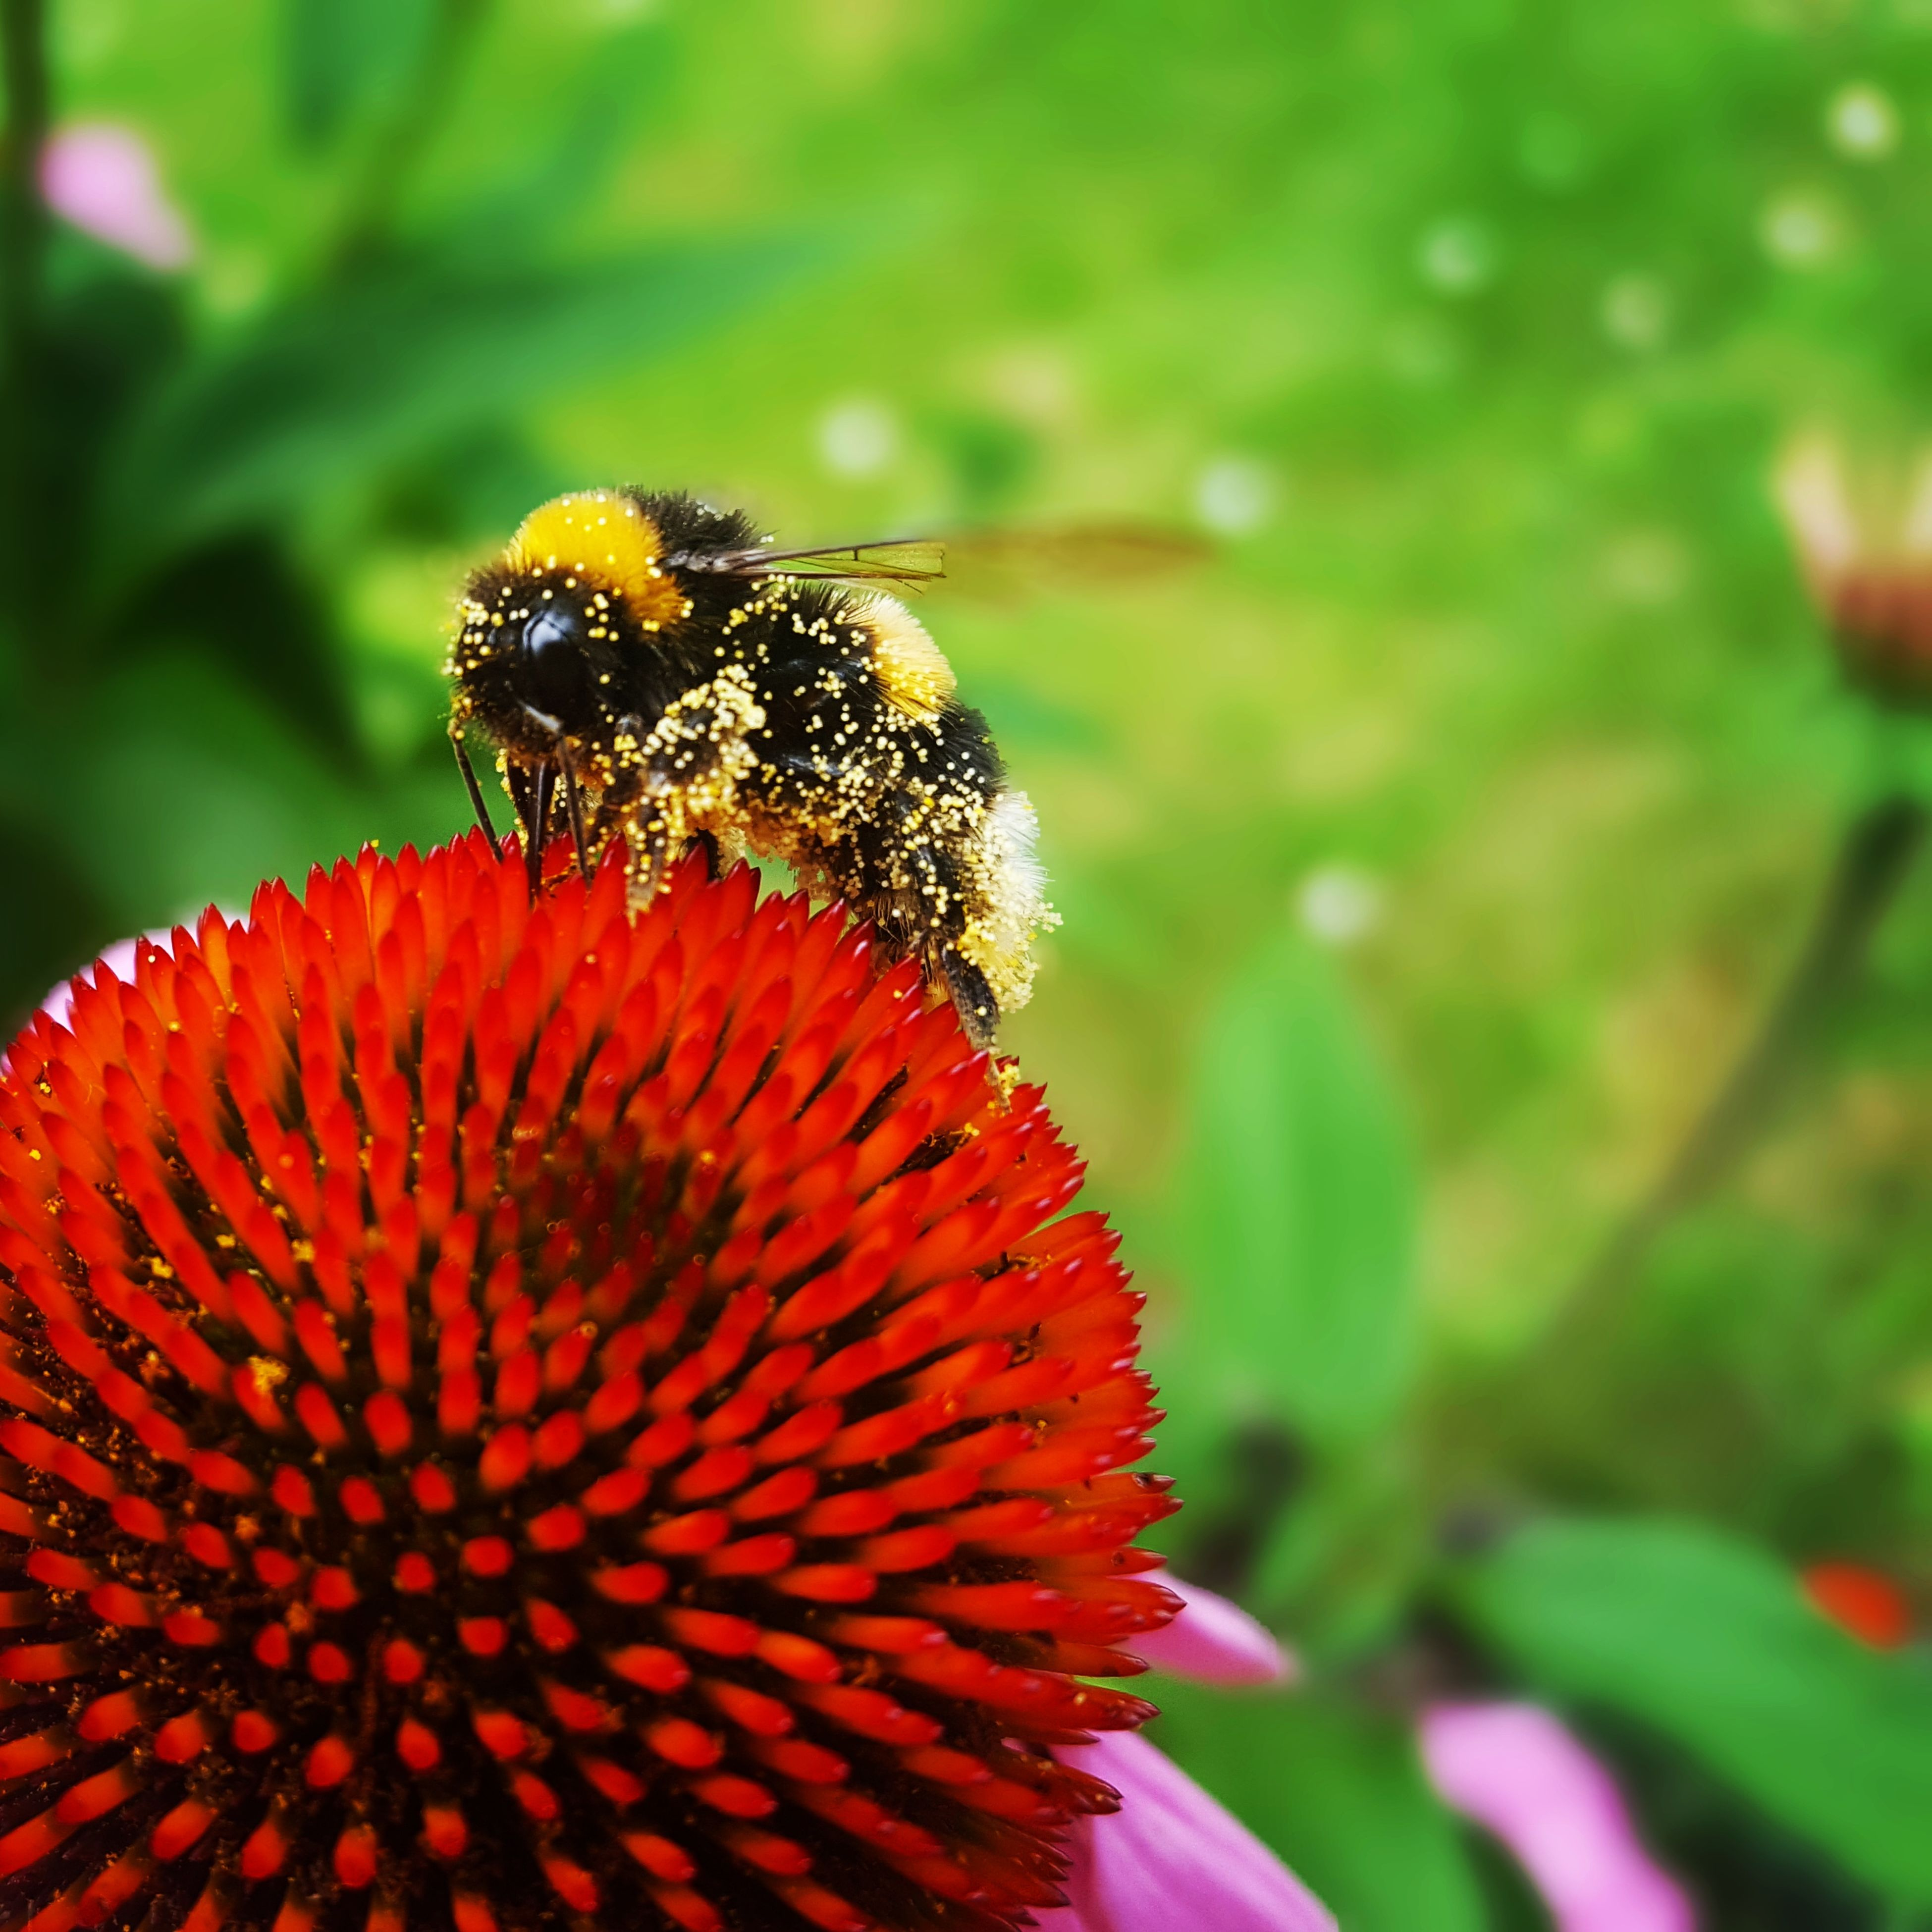 flower, freshness, nature, beauty in nature, fragility, petal, insect, growth, flower head, plant, animal themes, focus on foreground, one animal, no people, animals in the wild, day, outdoors, close-up, red, bee, pollen, pollination, blooming, eastern purple coneflower, zinnia